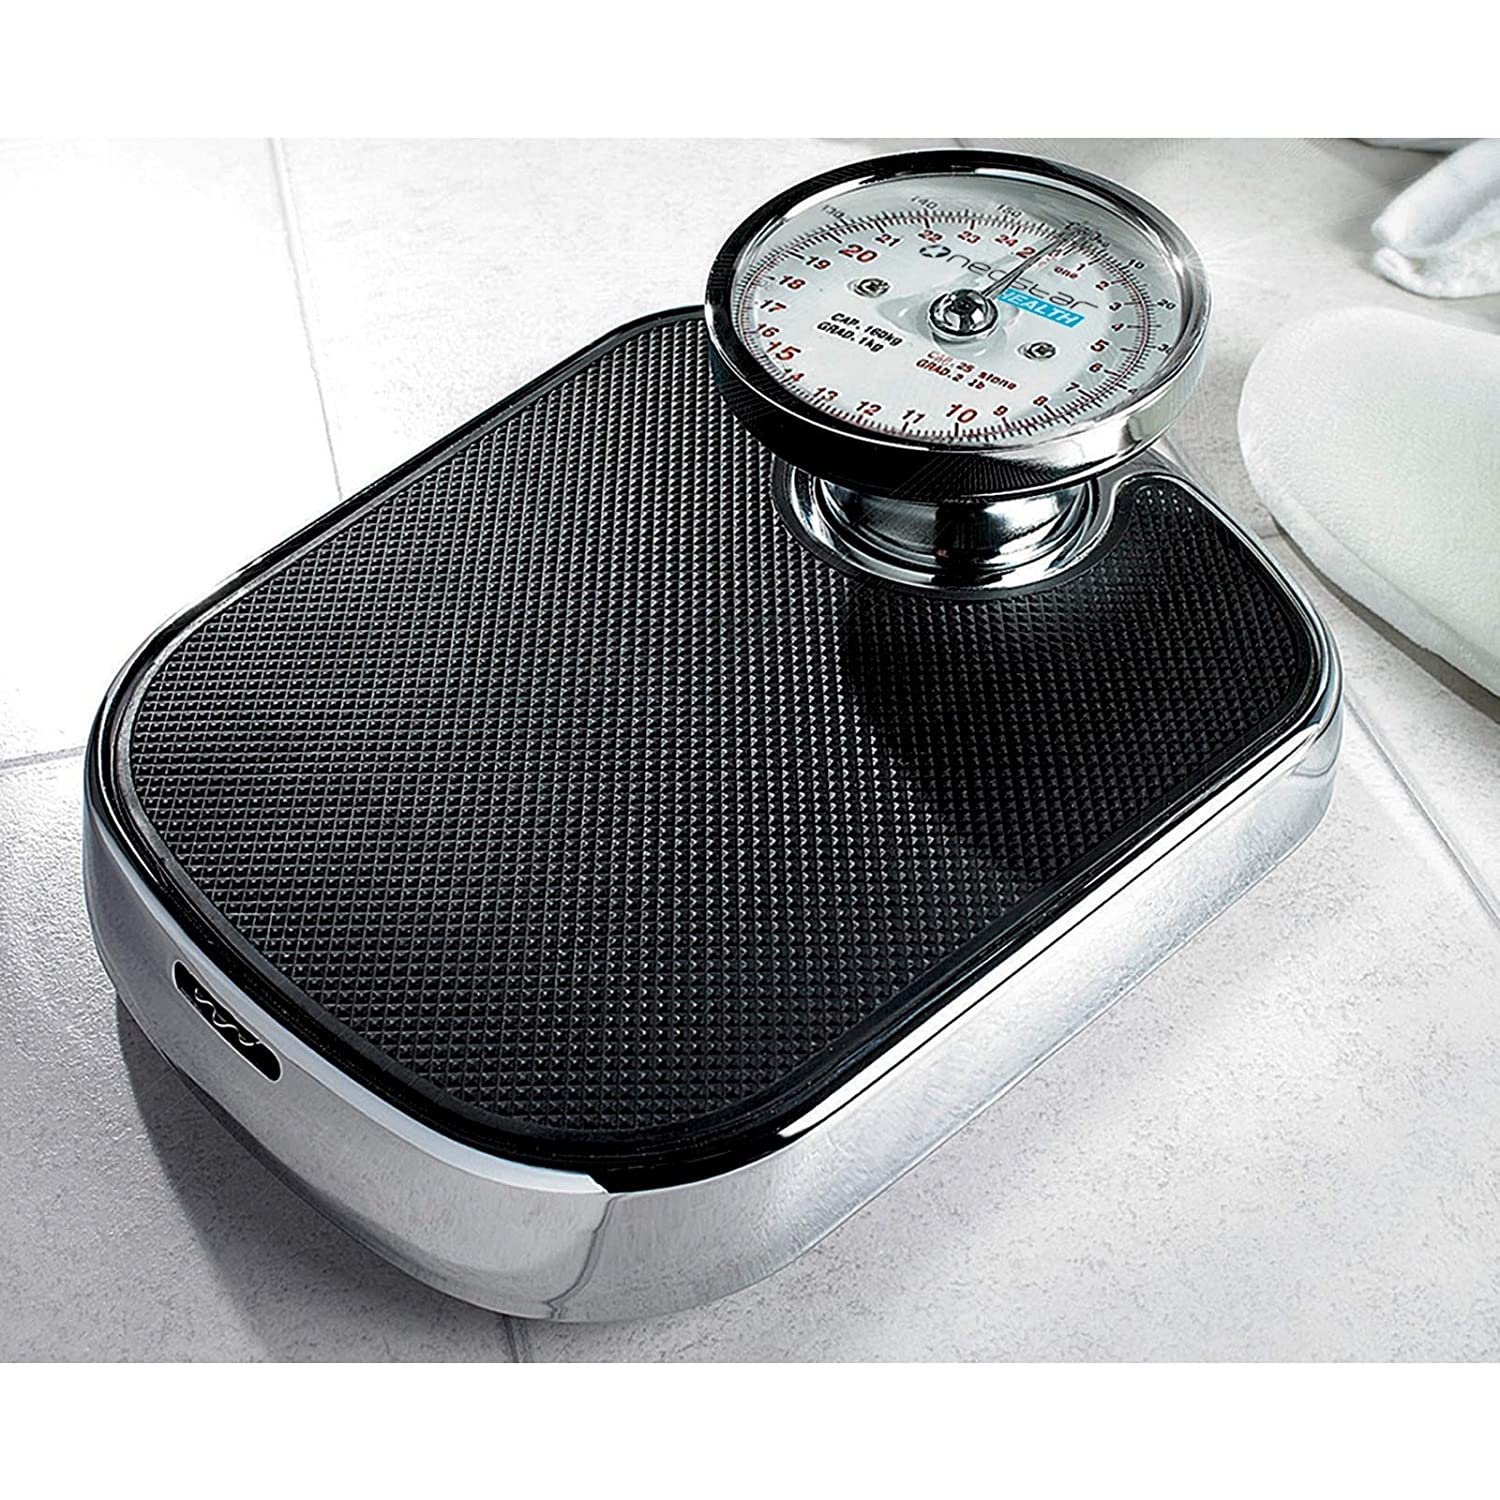 Burwells Mechanical Bathroom Scales With Large Analogue Display 25 Stone 160kg